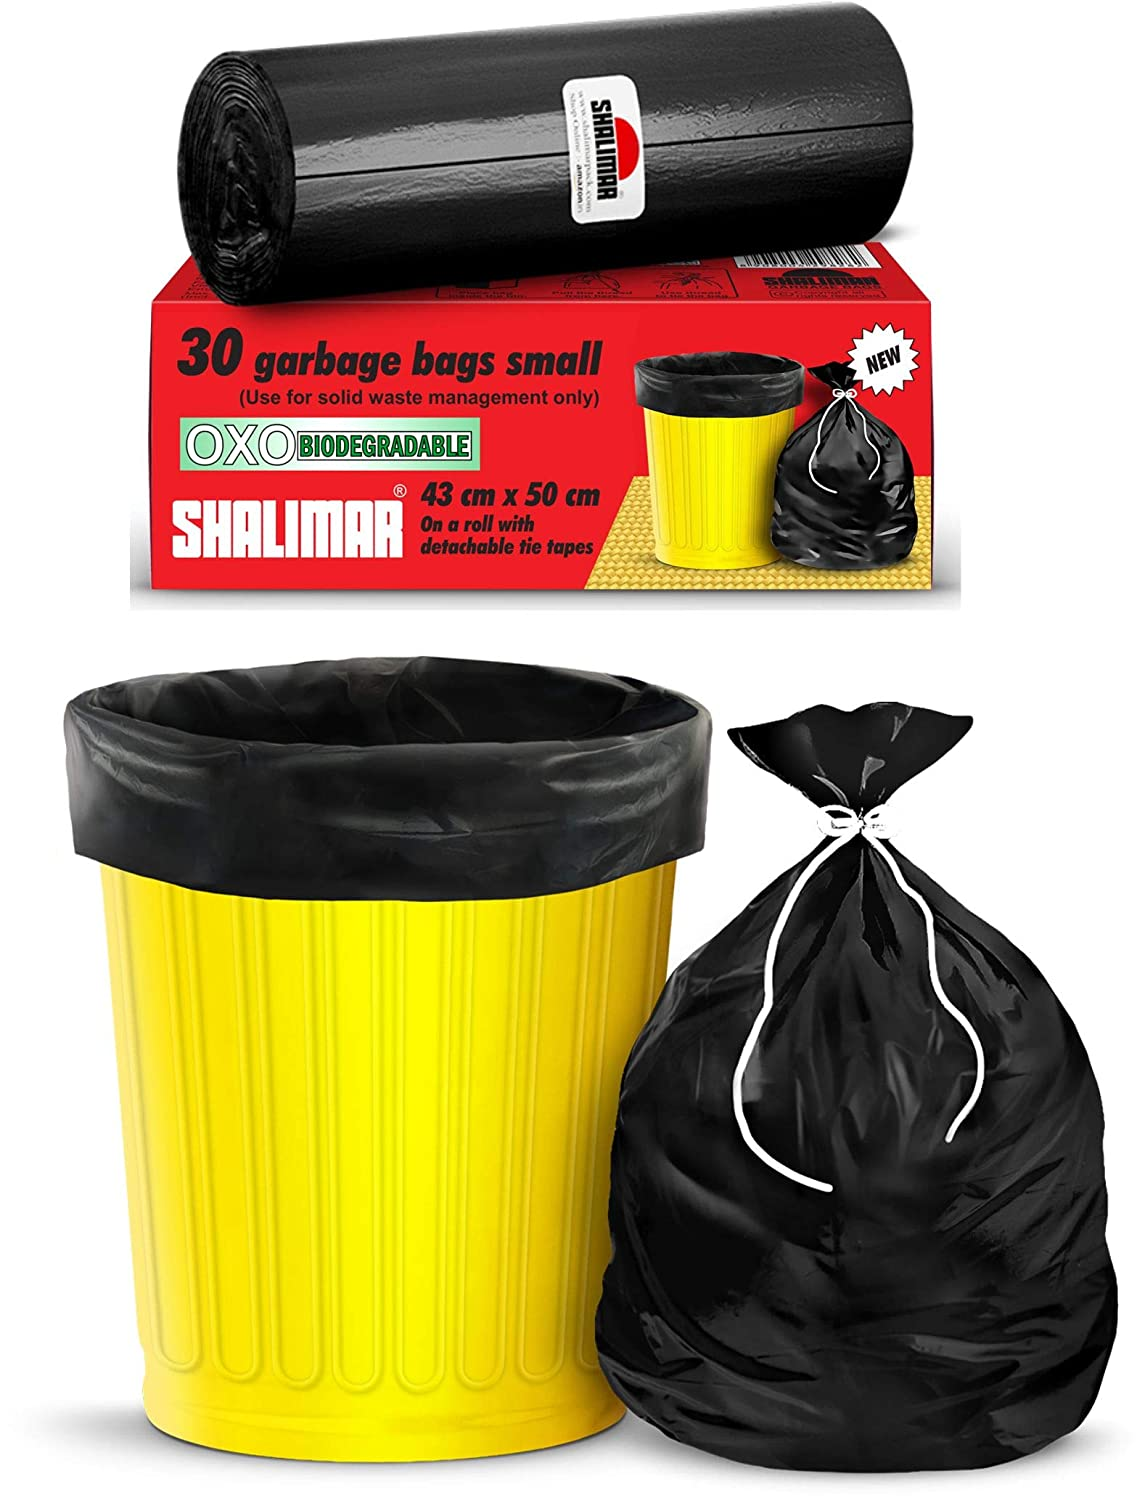 Best Biodegradable Garbage Bags India 2021